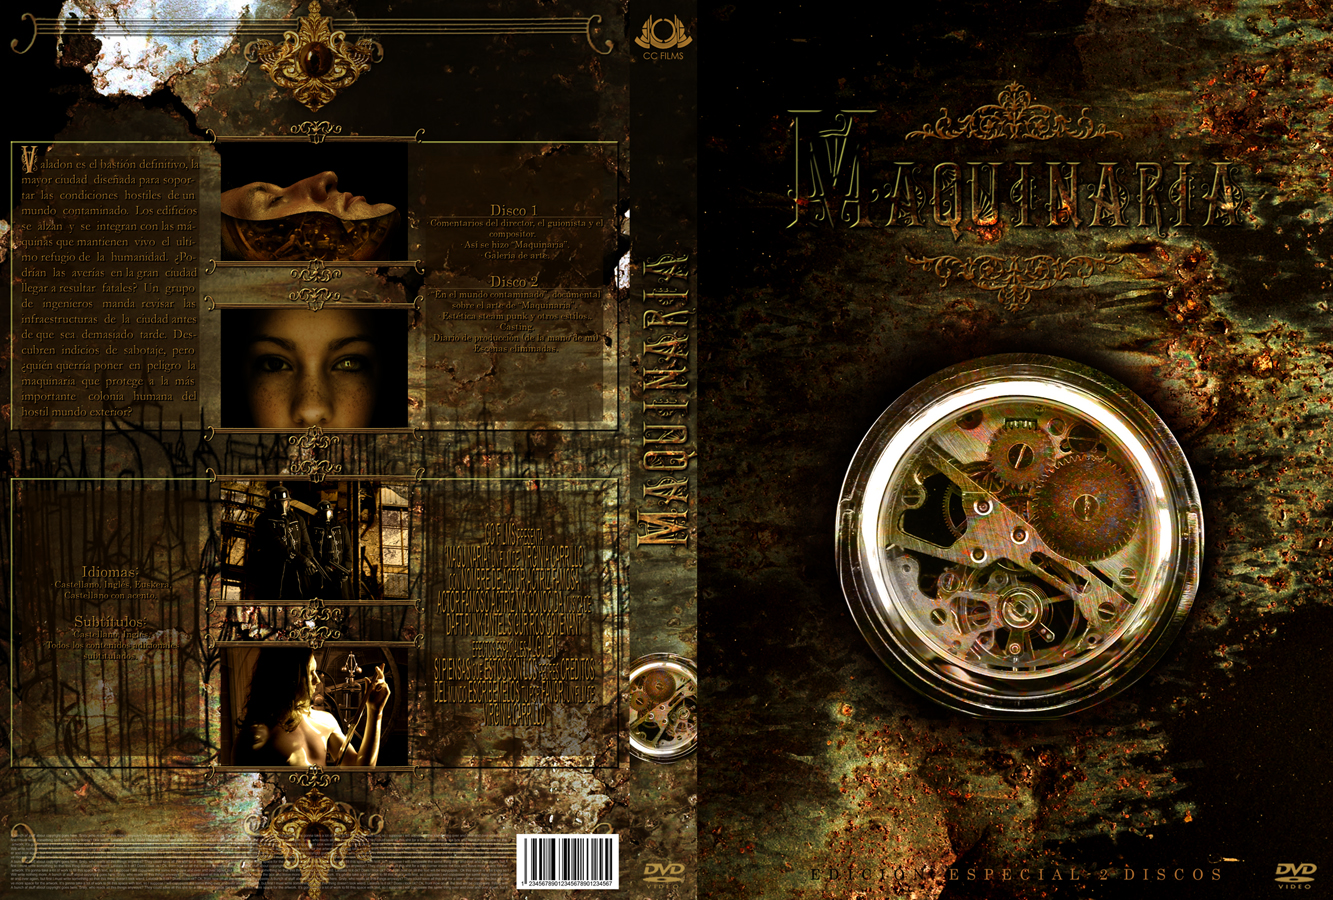 Maquinaria dvd cover by Nissun